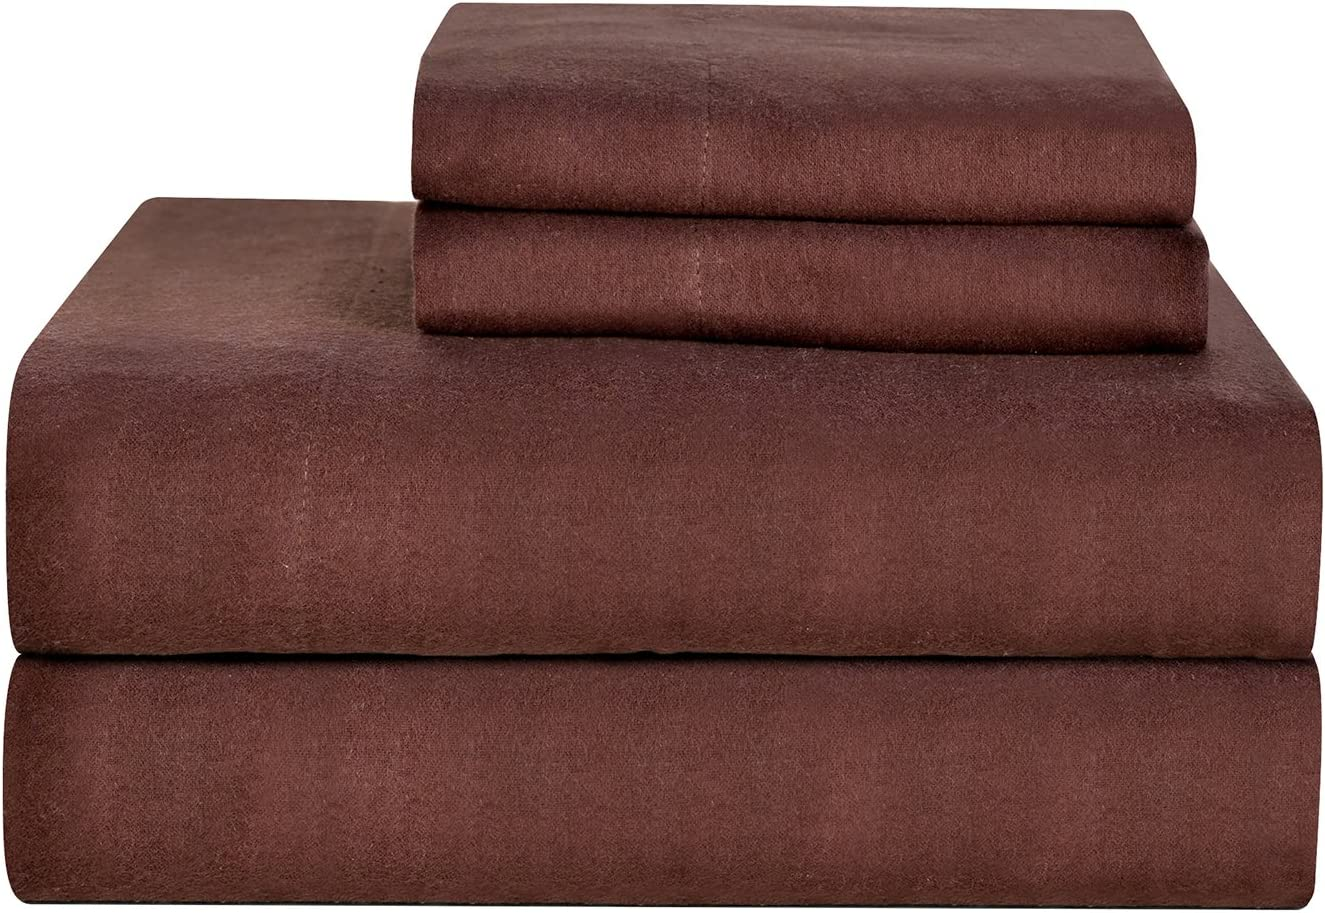 Celeste Home Ultra Soft Flannel with Calif Be super welcome Price reduction Sheet Pillowcase Set